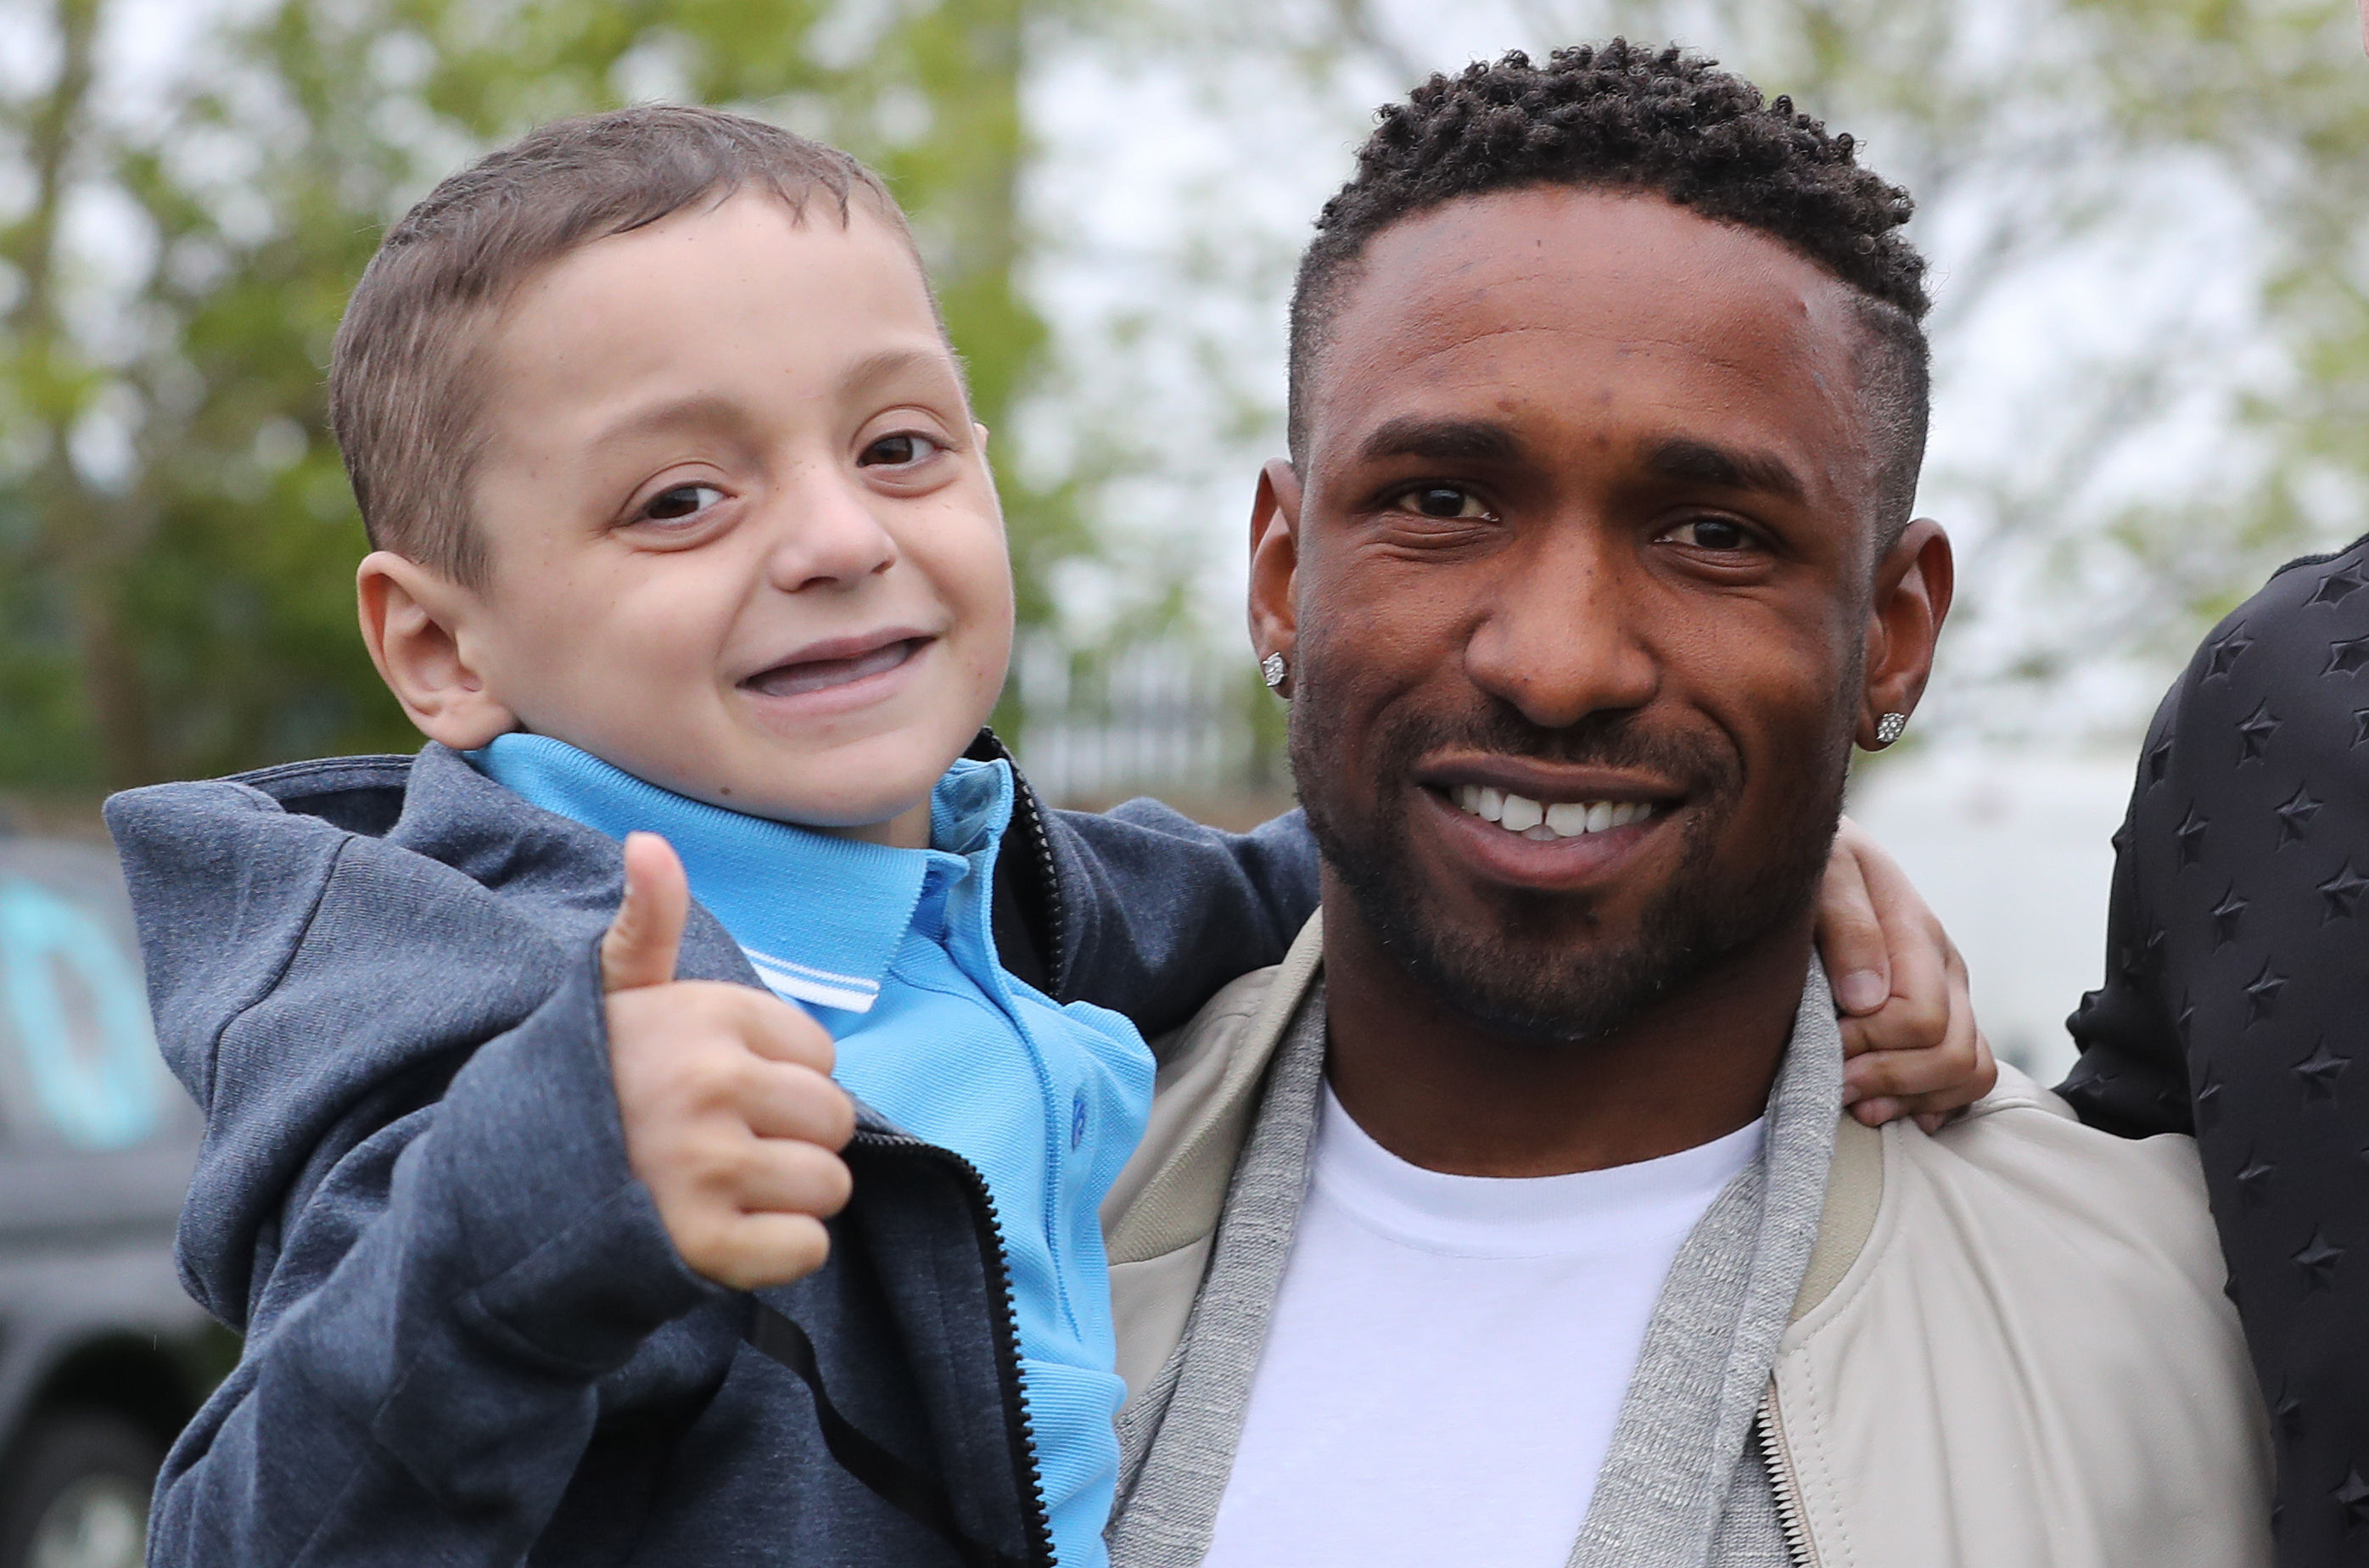 Jermain Defoe pays heartfelt tribute to young cancer fighter Bradley Lowery